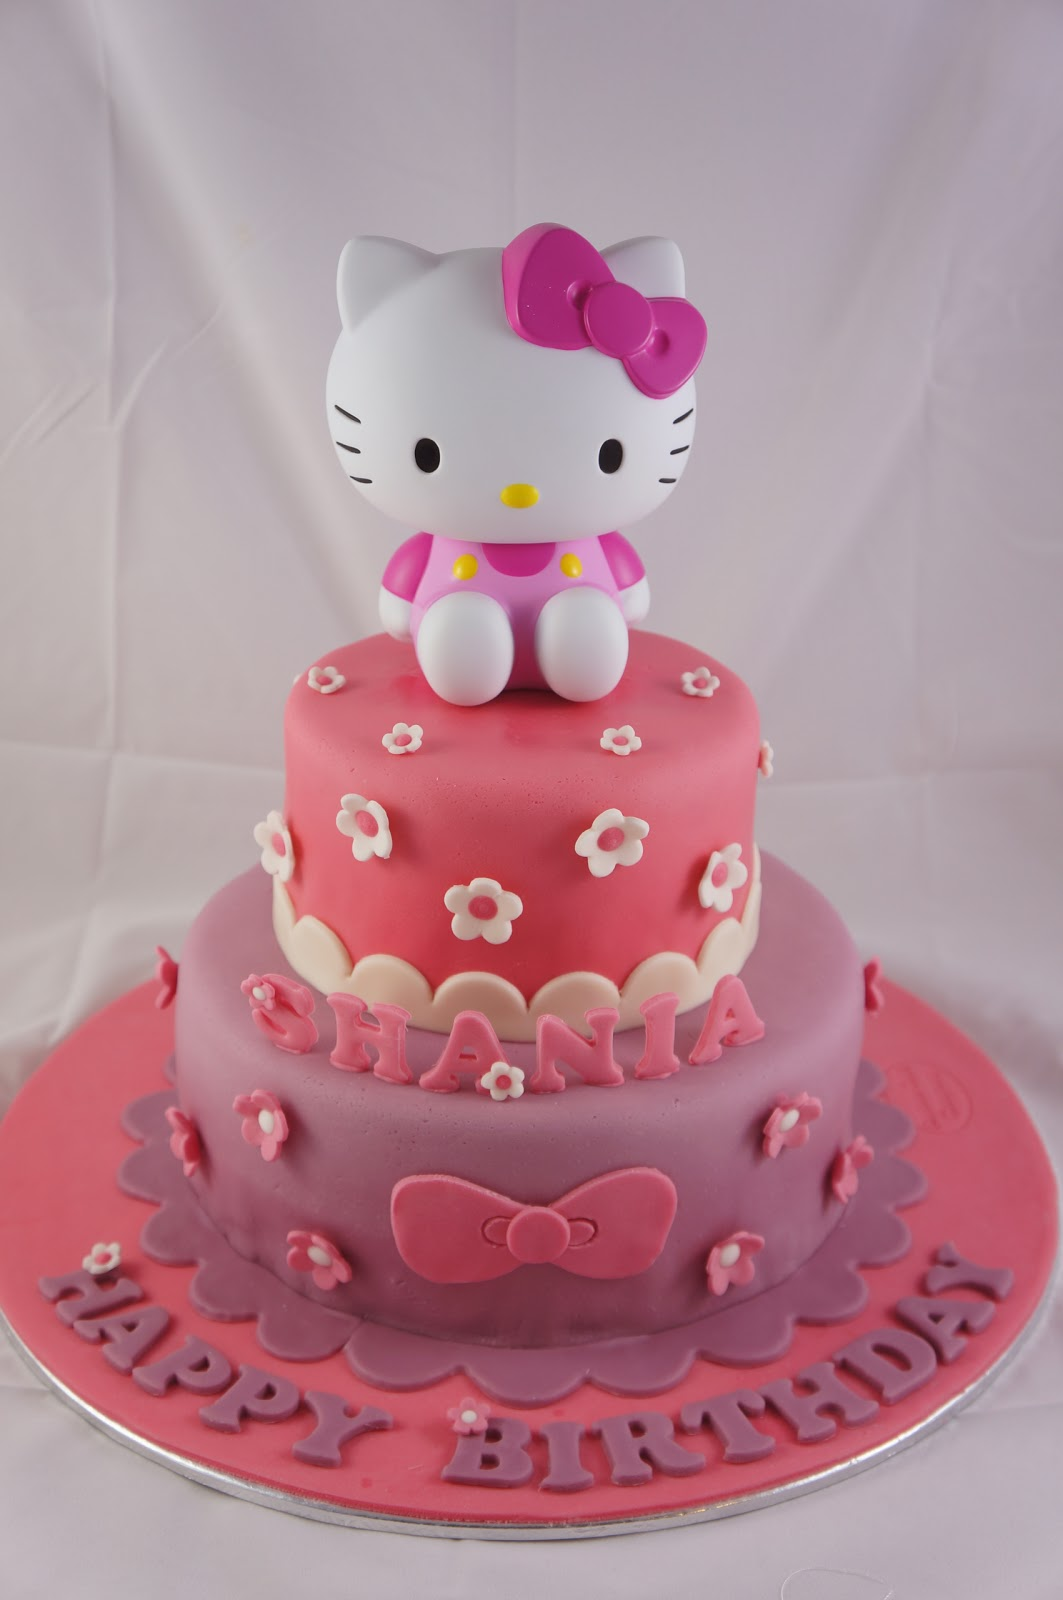 hello kitty cake the customer provided the hello kitty toy and asked ...